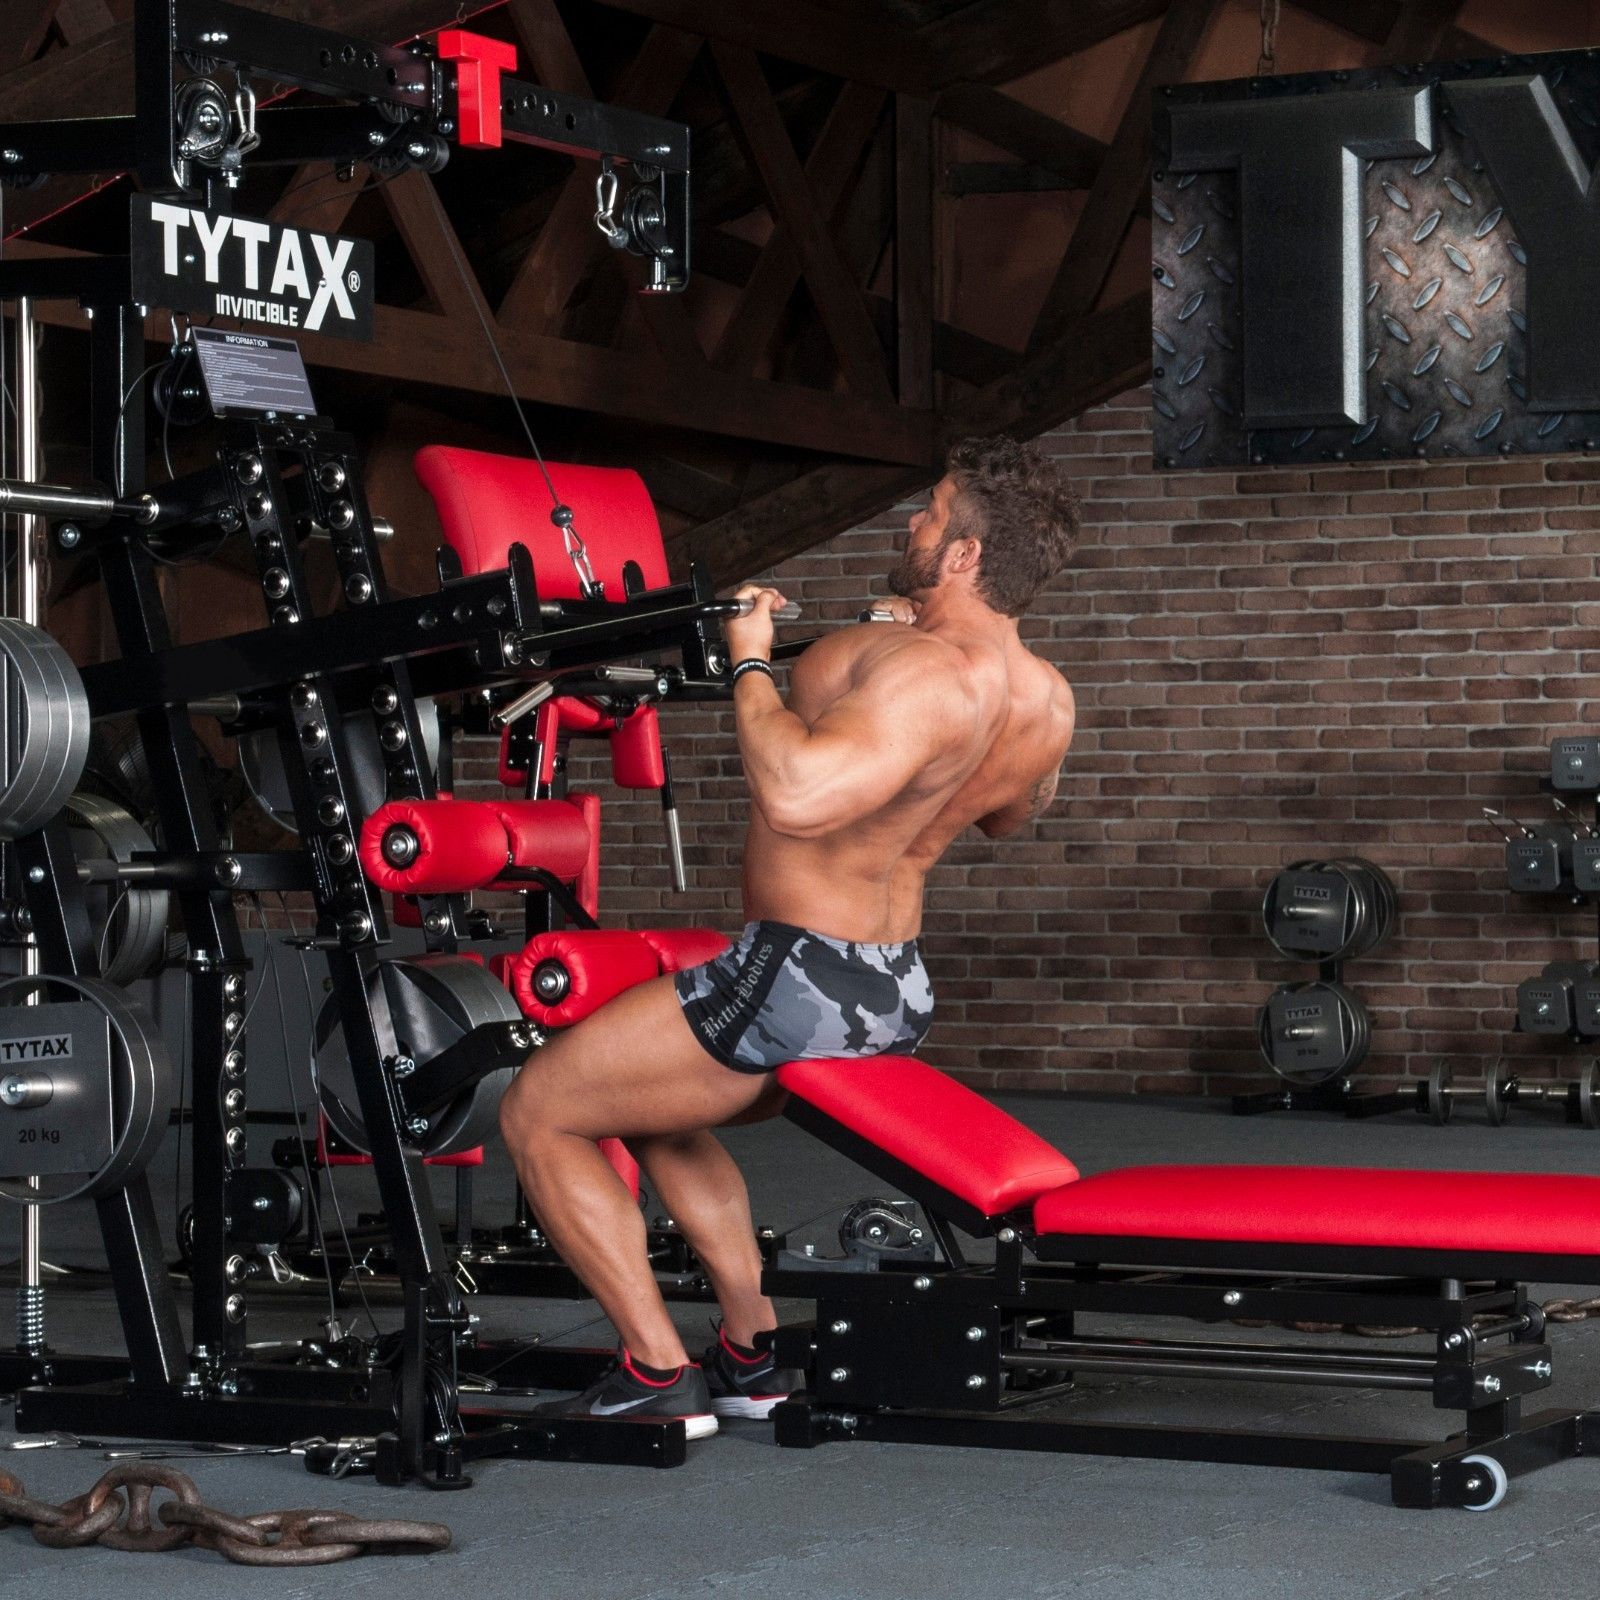 Tytax M2 Home Gym - Best Home Gyms for Bodybuilding